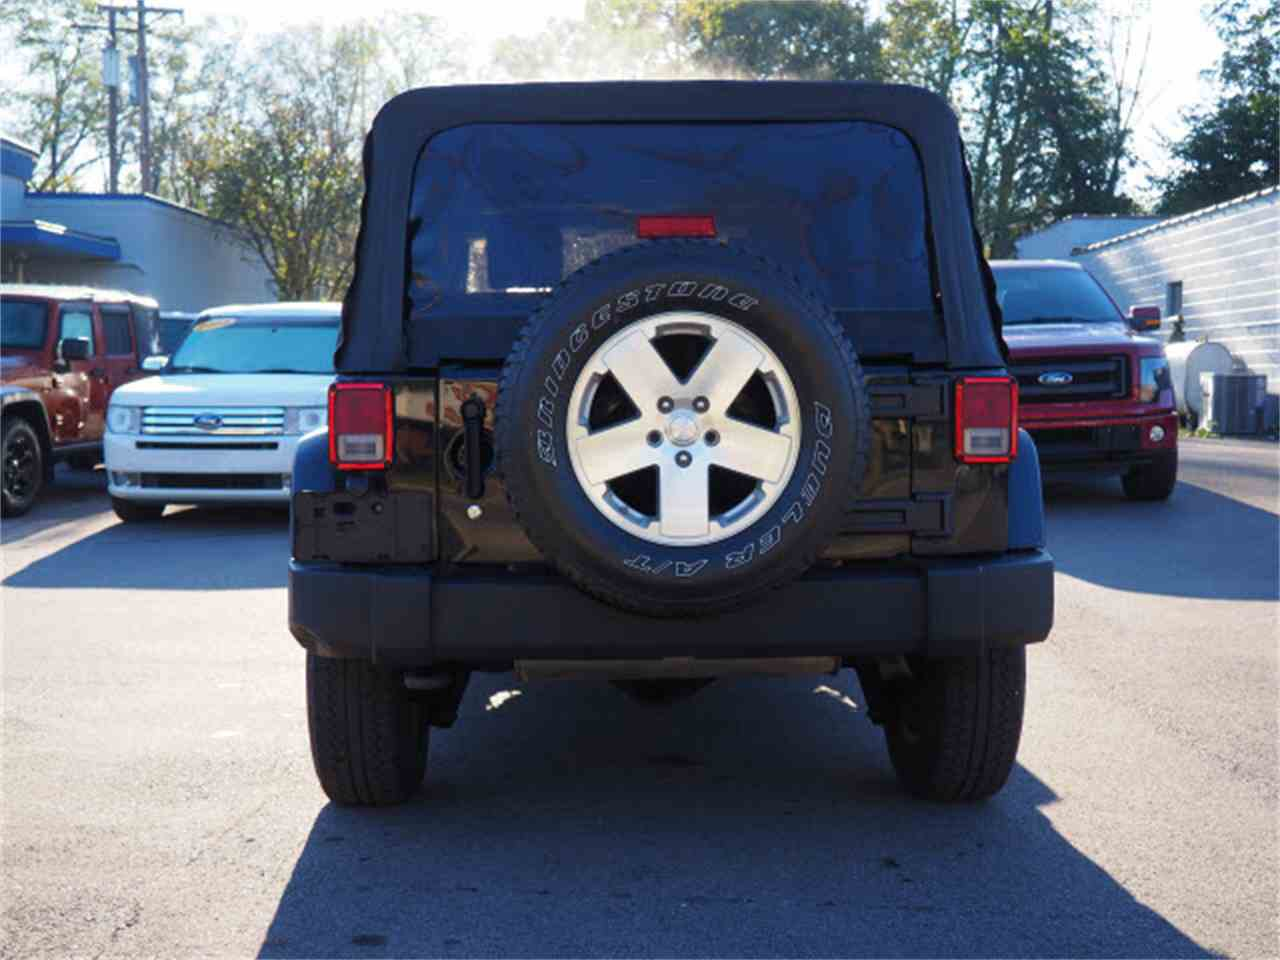 Large Picture of 2009 Wrangler located in Ohio Offered by Cincinnati Auto Wholesale - LWMR